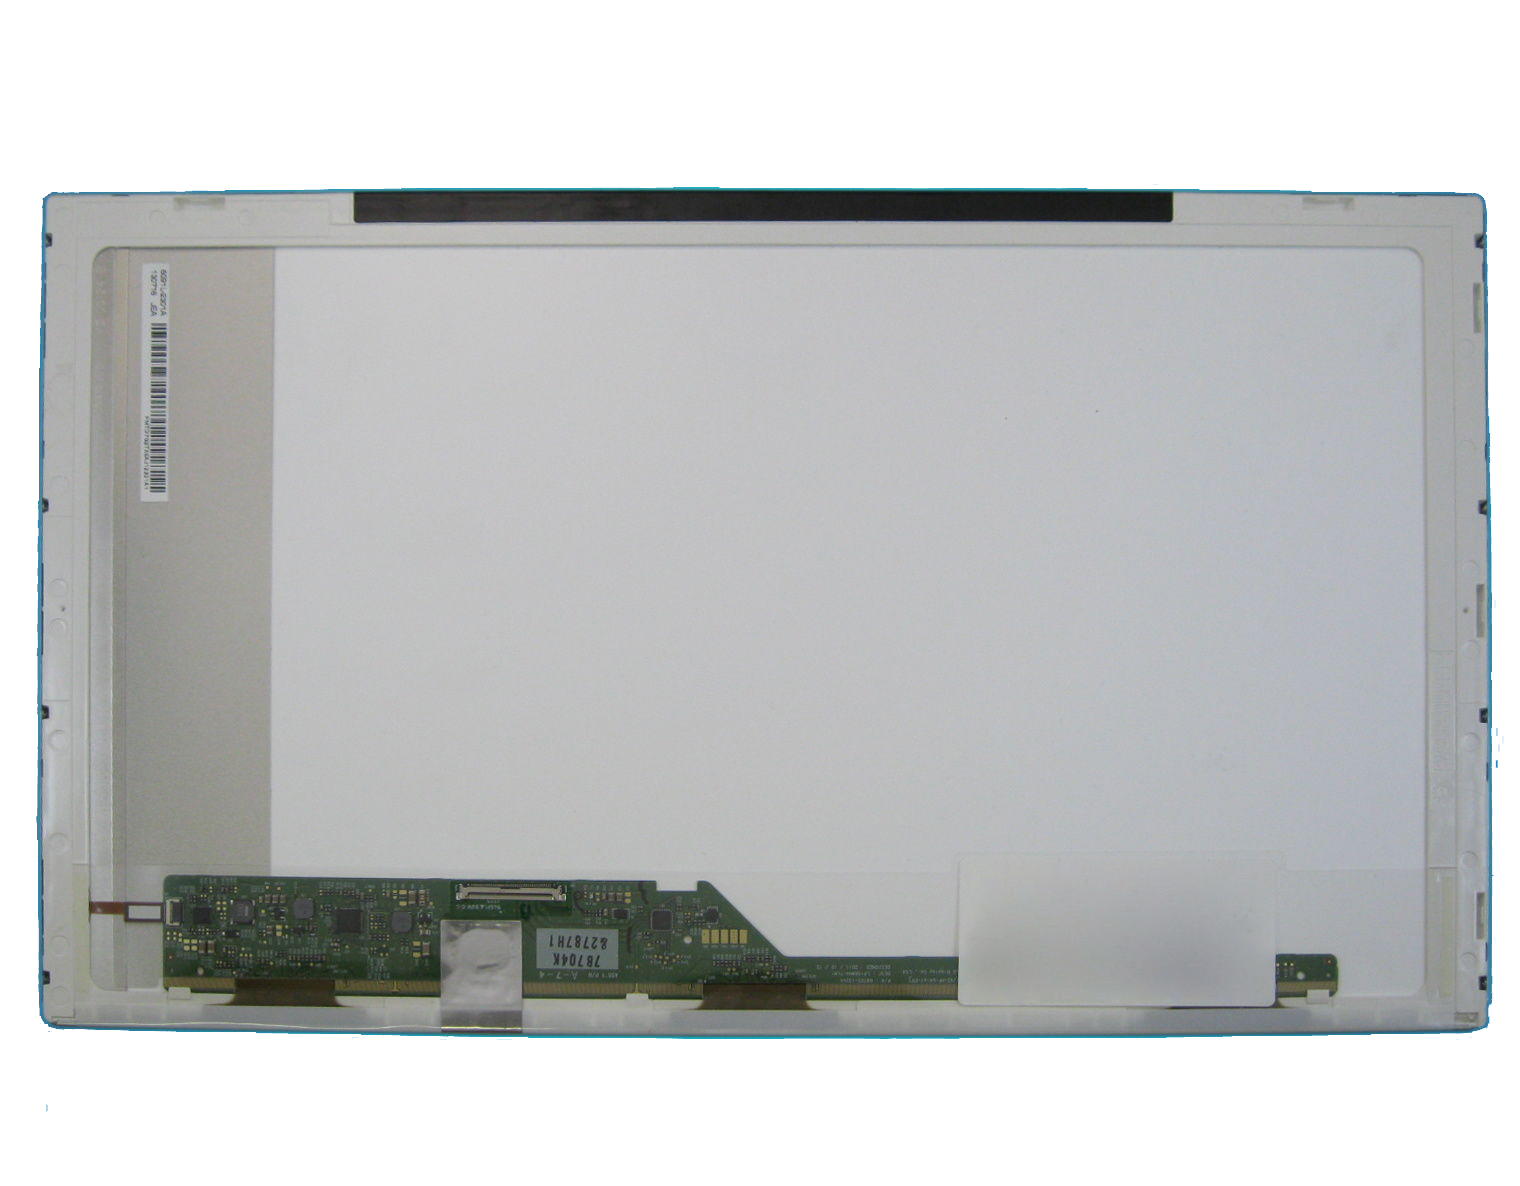 где купить QuYing Laptop LCD Screen for Toshiba Satellite Pro C660 C660D L500 L500D C650 C650D Series по лучшей цене